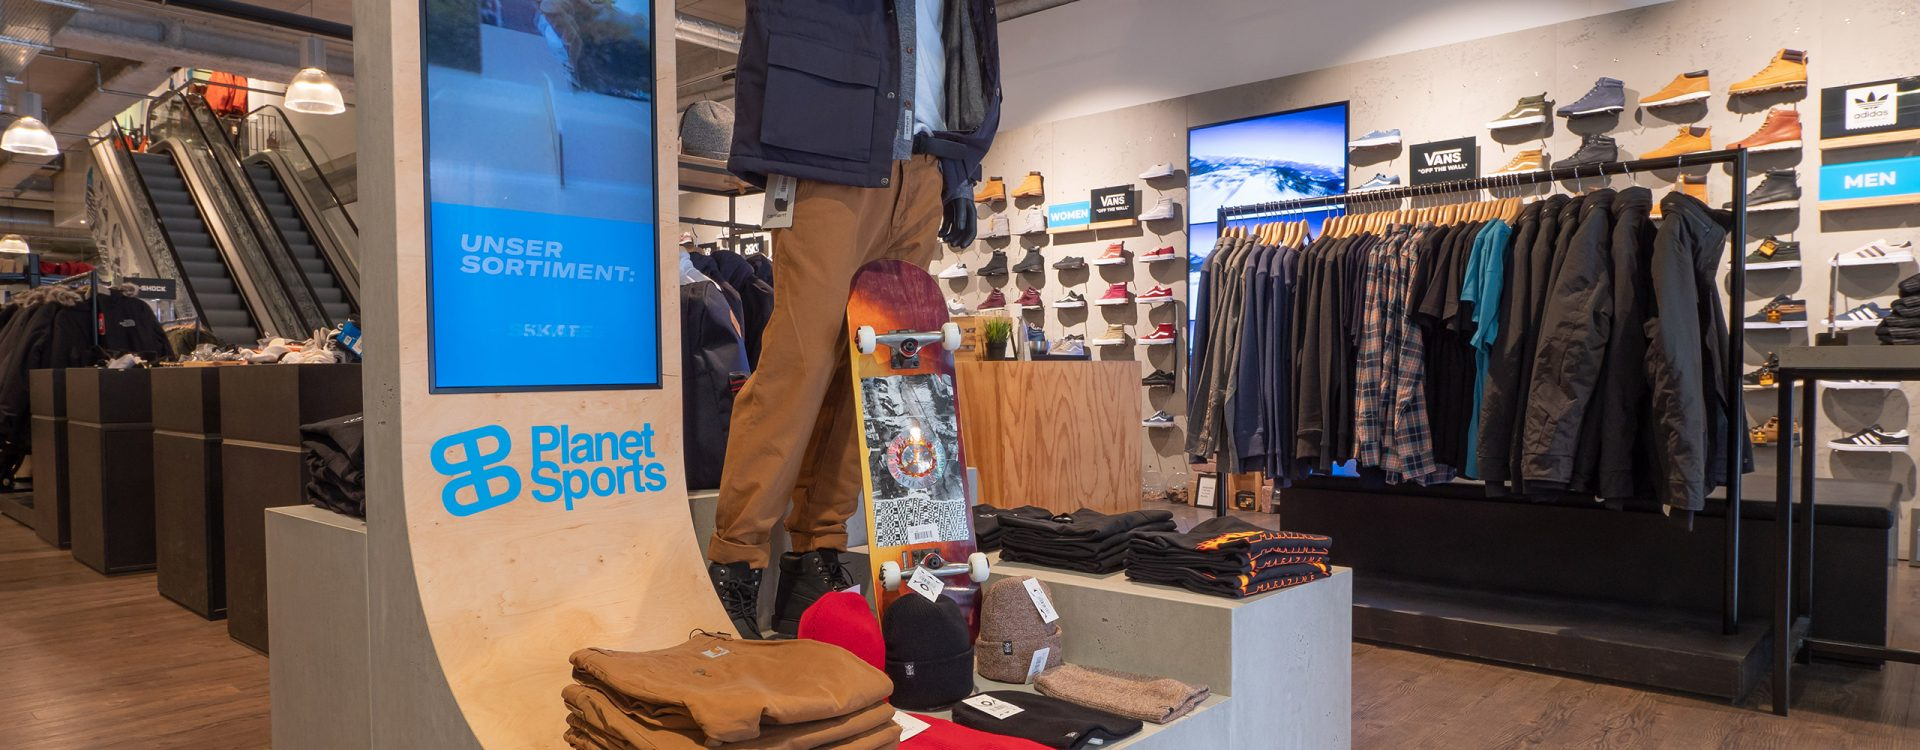 Kleinhempel Digital Signage Displays im Planet Sports-Store